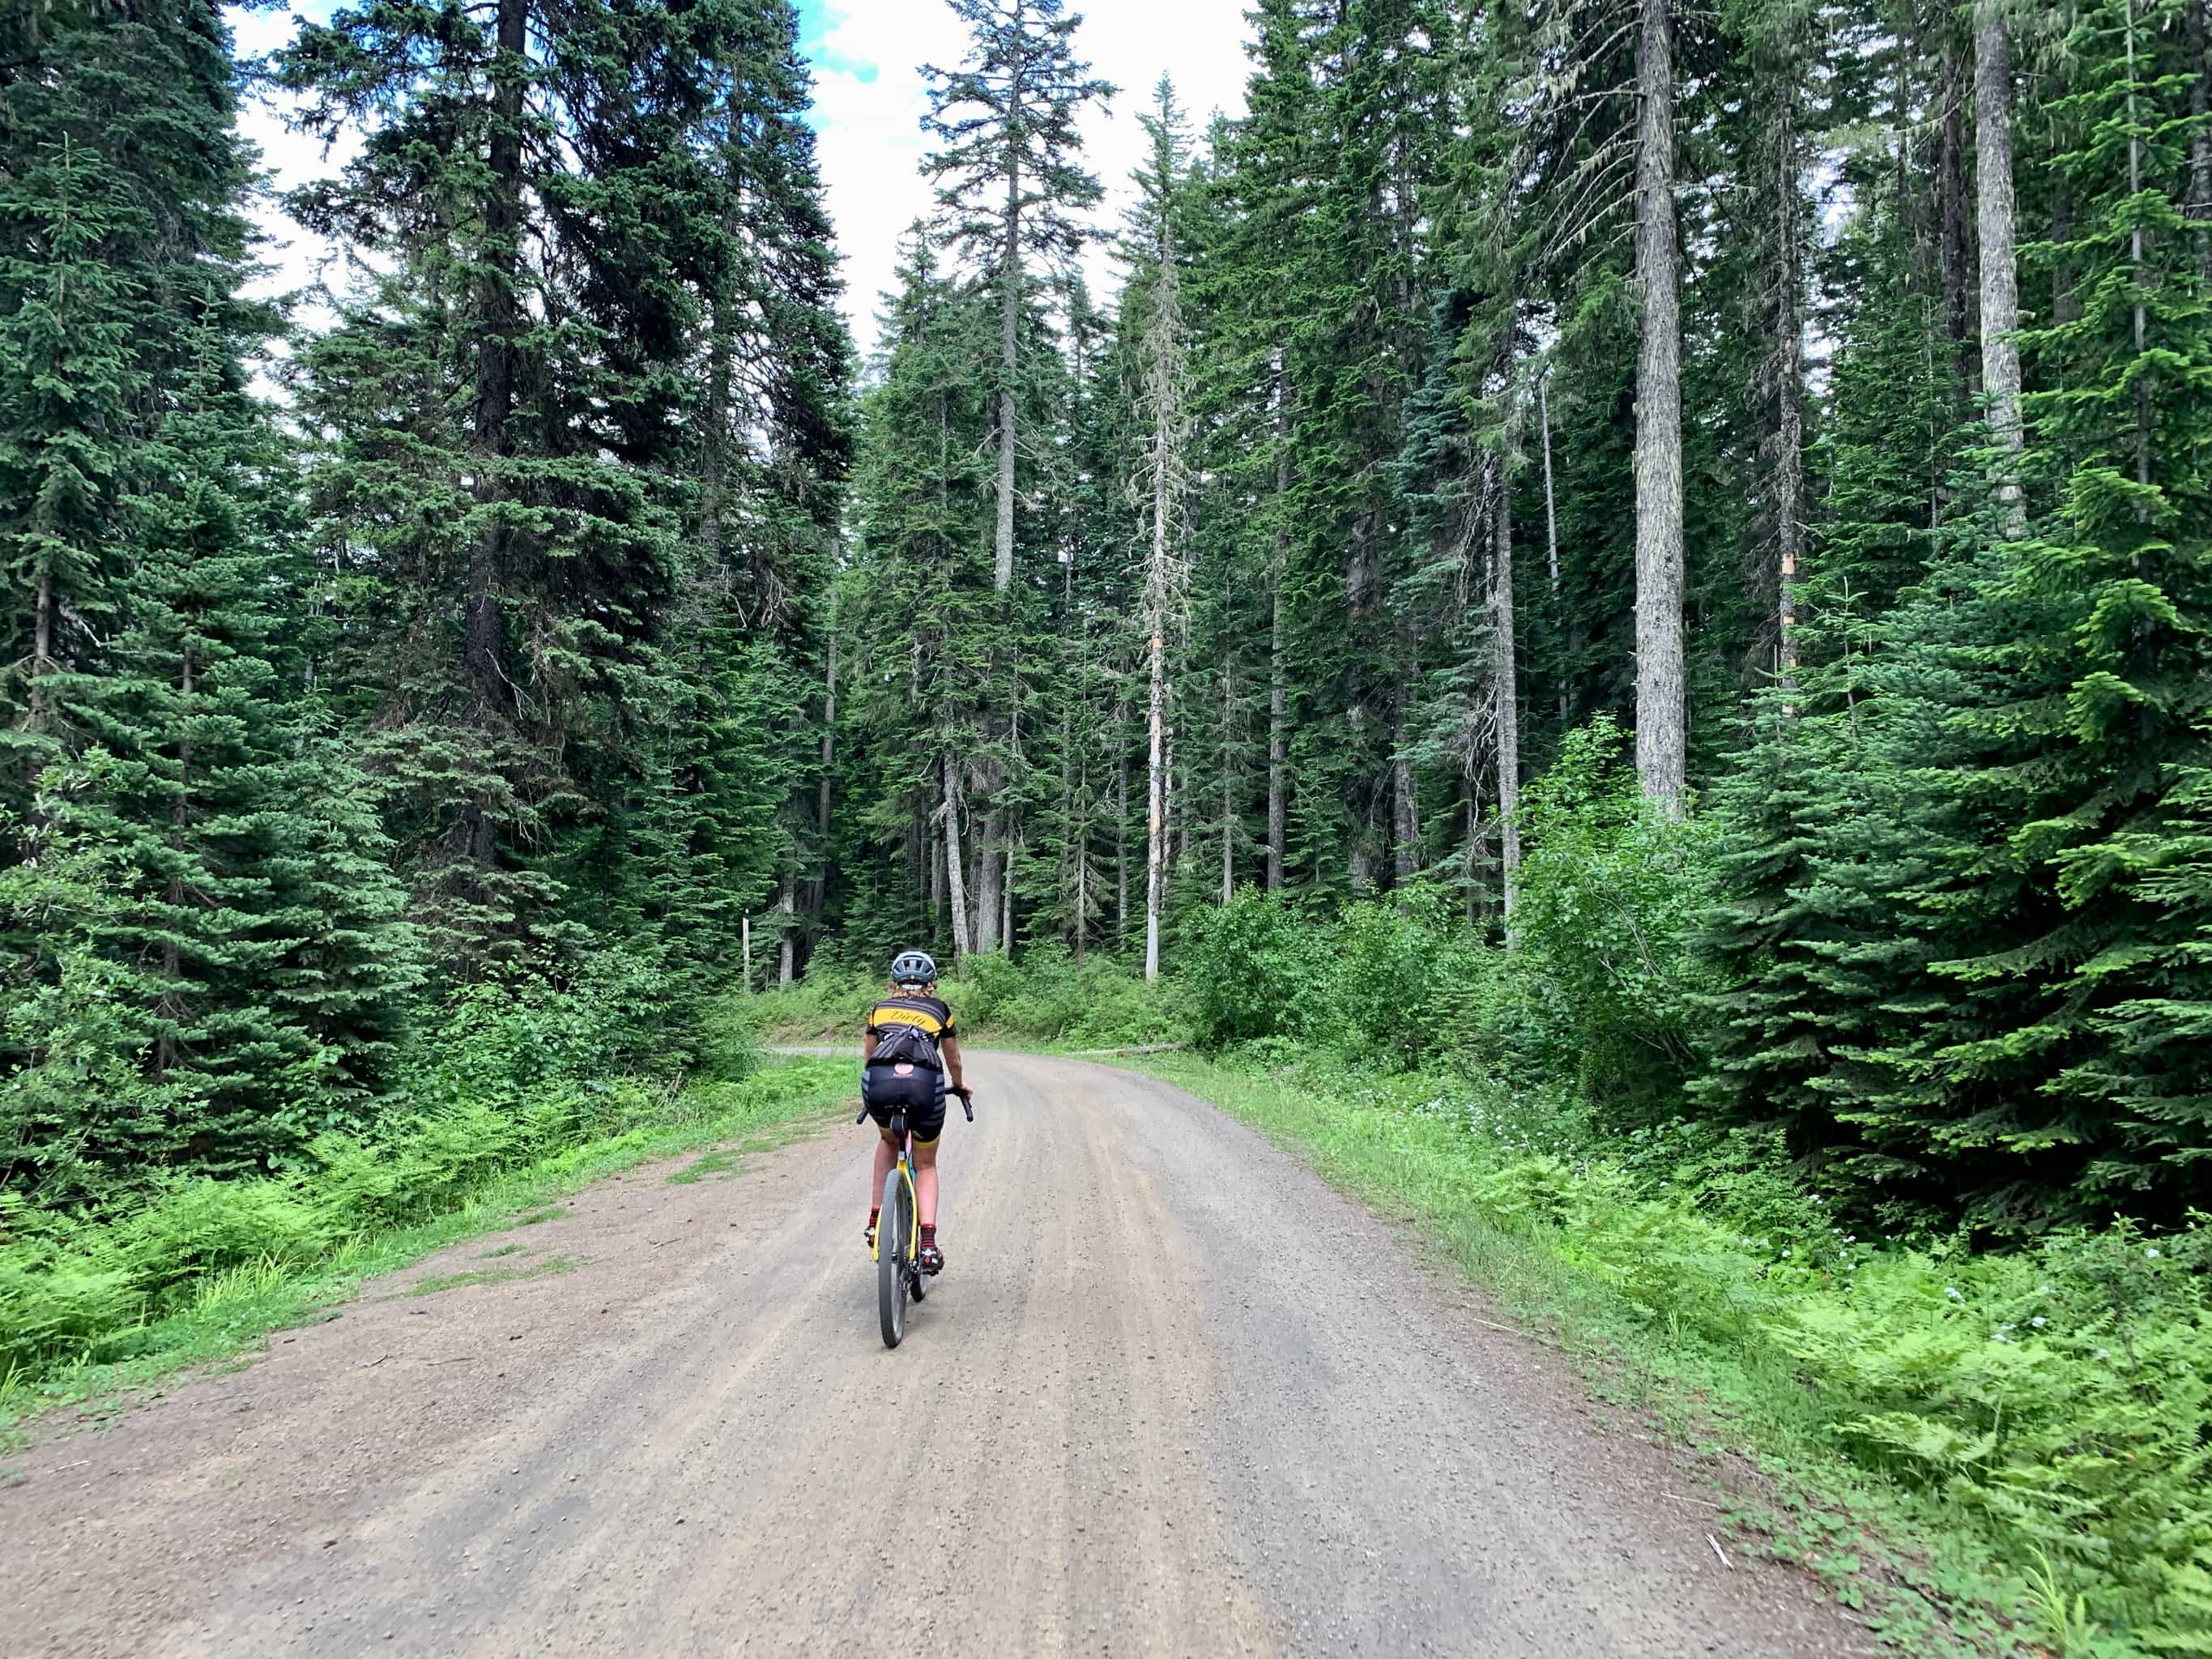 Cyclist on gravel road NF-8810 nearing intersection with NF-23 in Gifford Pinchot National Forest near Trout Lake, Washington.